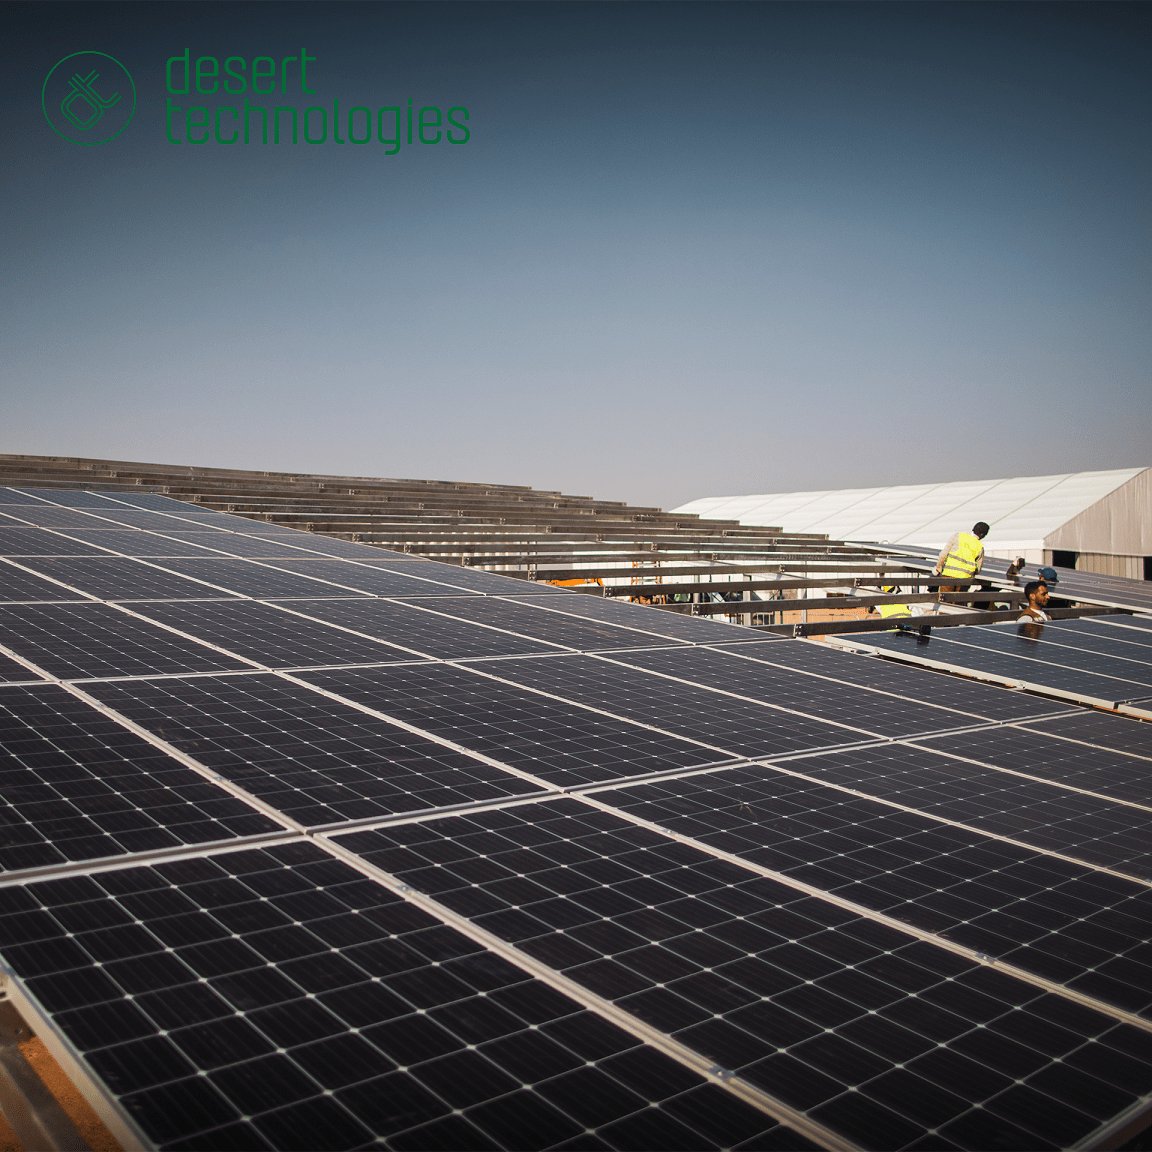 Algeria Aims At Generating 15,000 MW Of Solar Energy By 2035